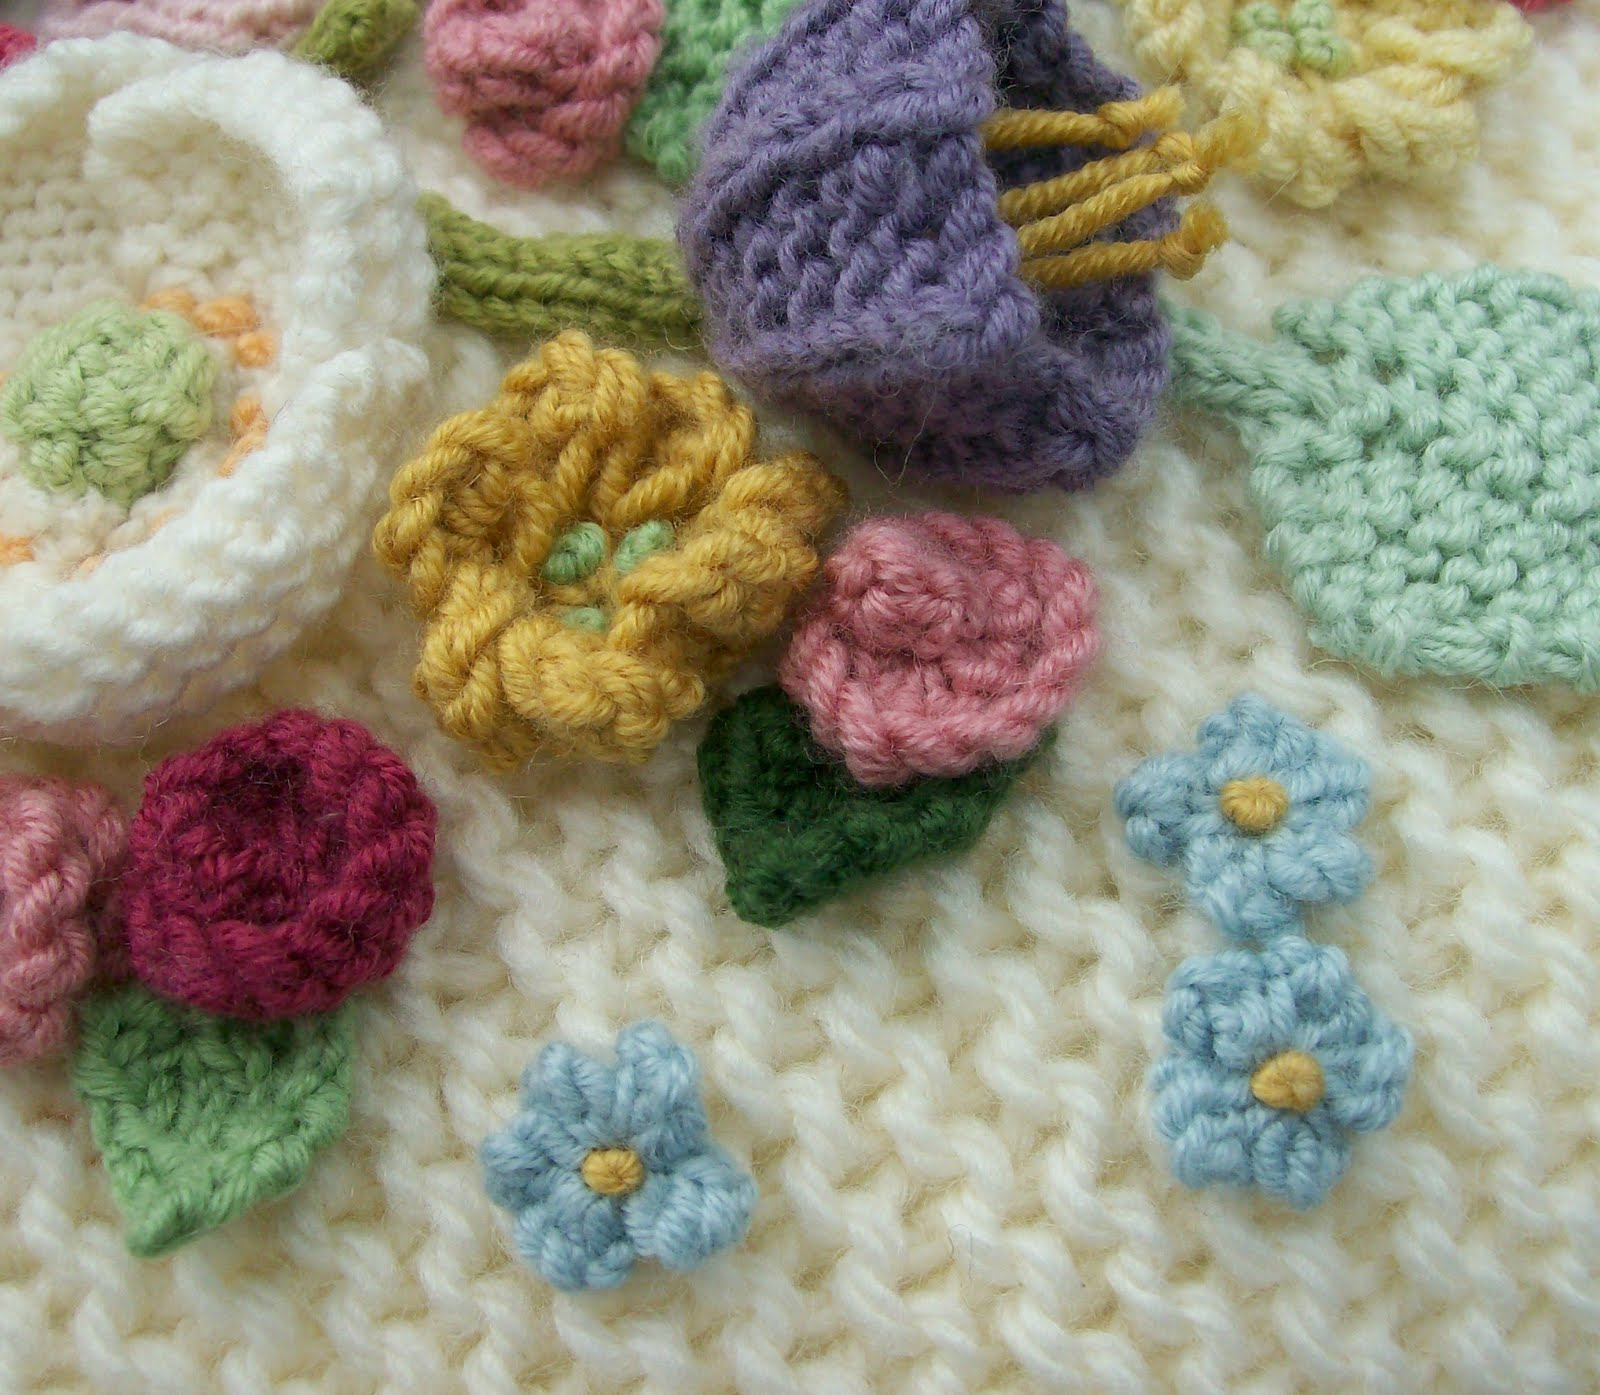 How To Knit Crochet : Knot Garden: Forget-me-not